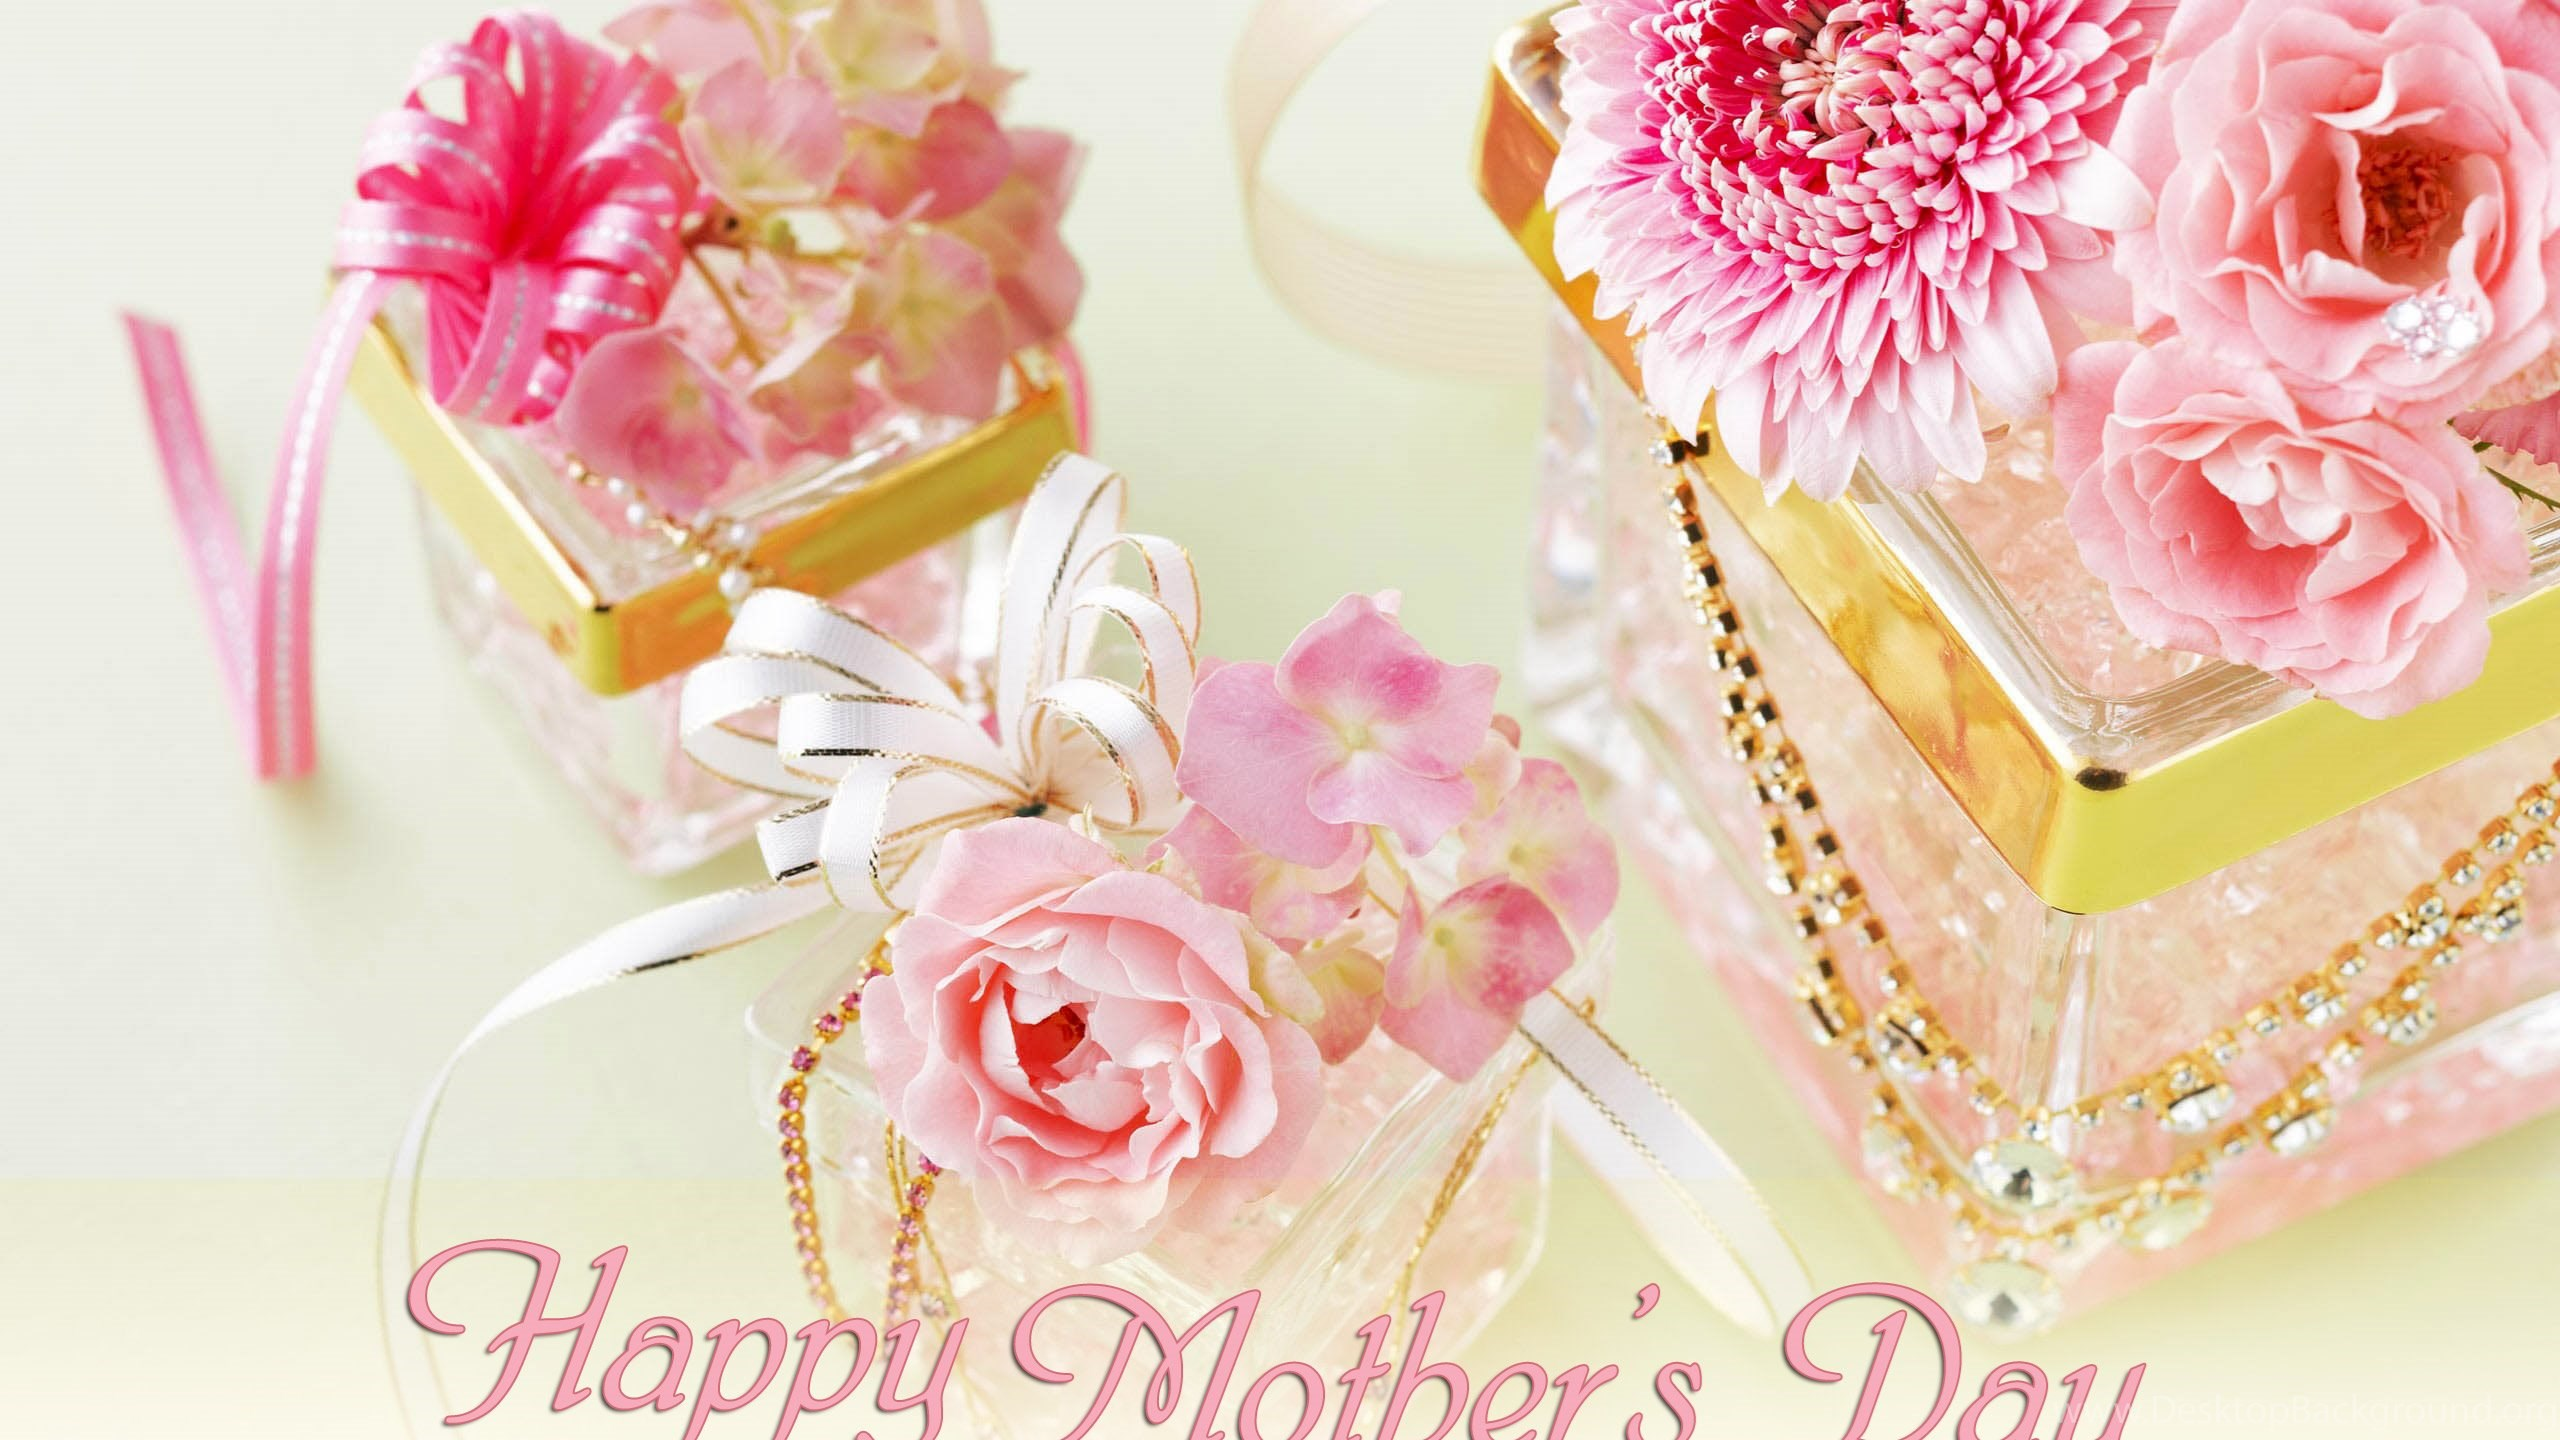 Happy Mothers Day Wallpapers Hd Wallpaper Backgrounds Of Your